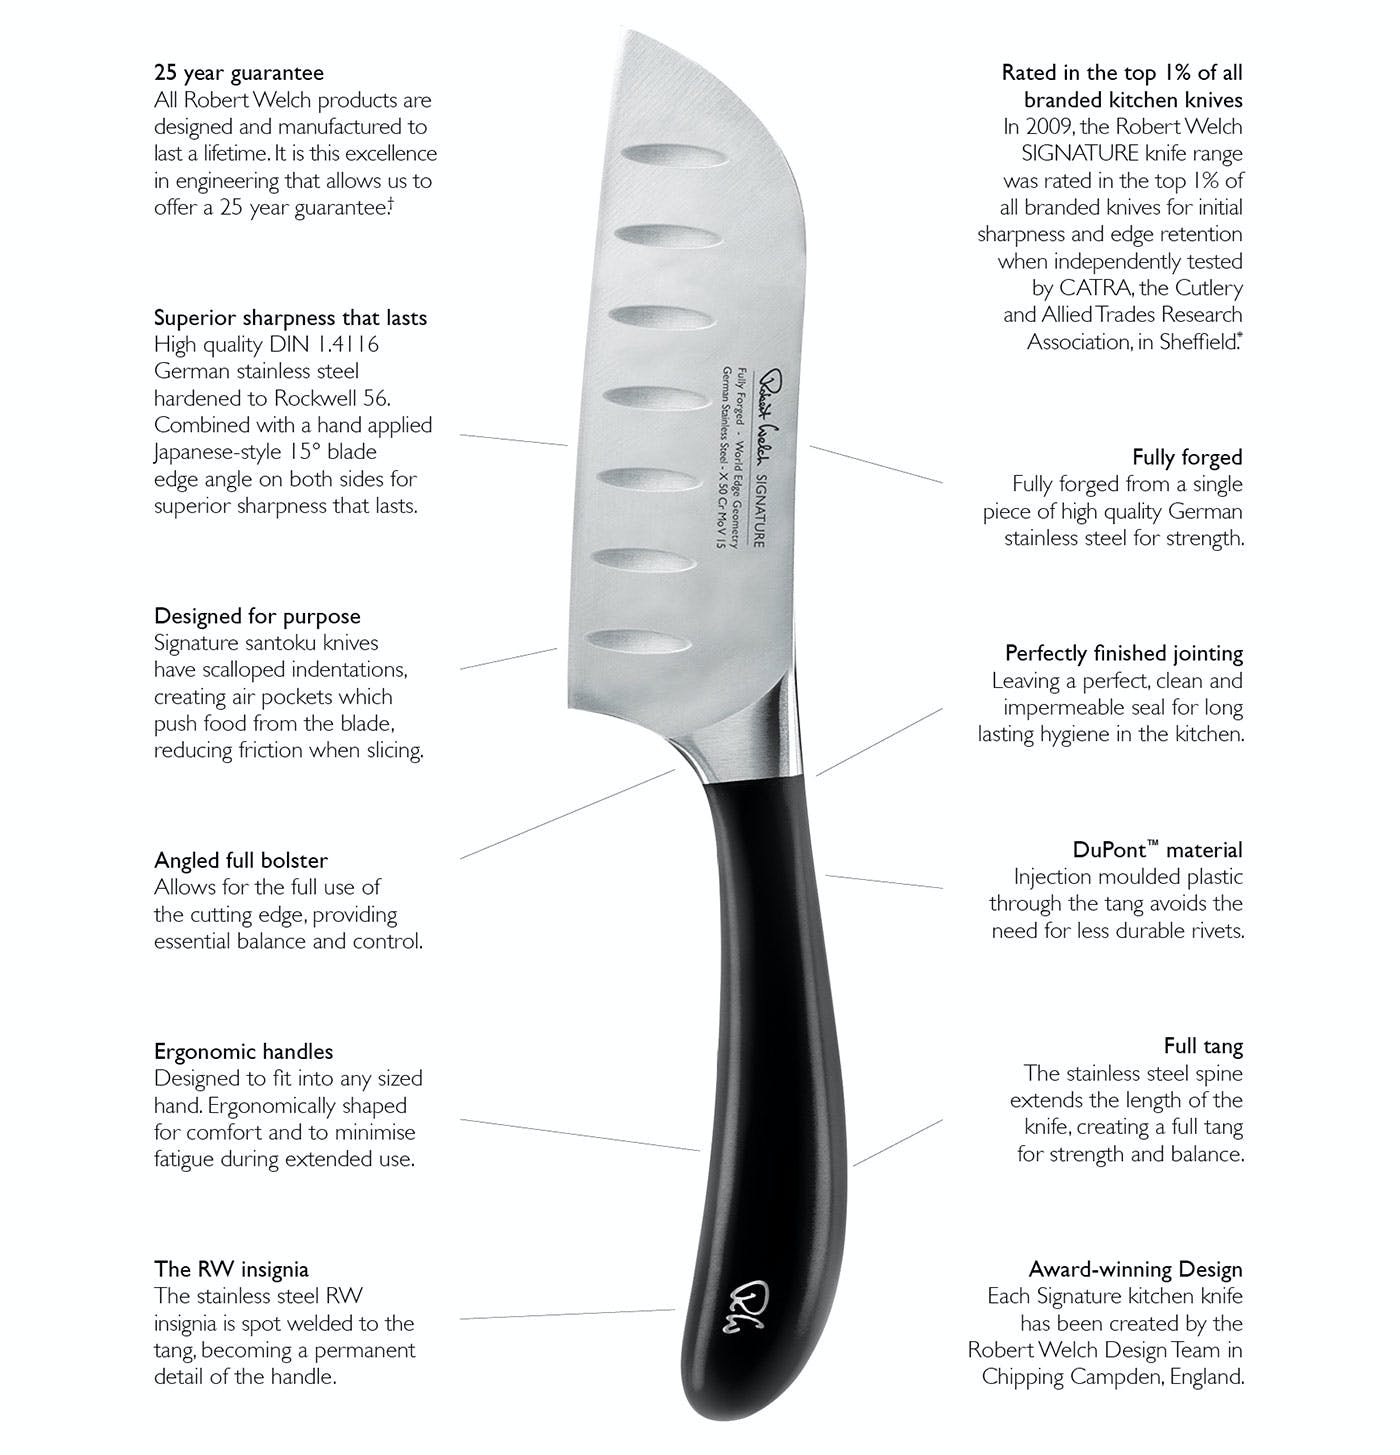 knife features